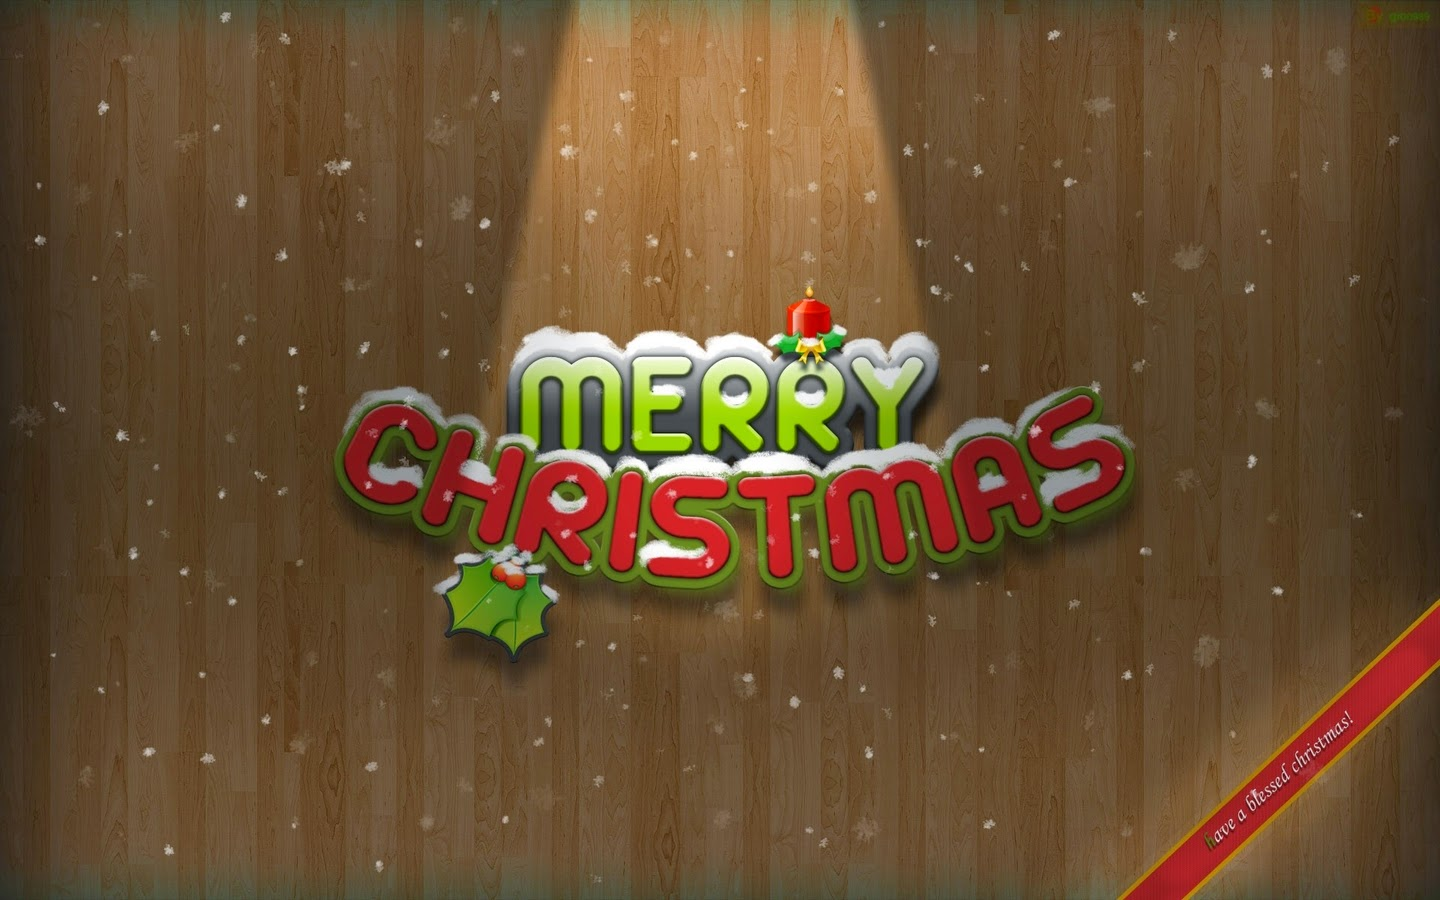 merry_christmas_3d-text-with-wooden-background-HD-image-picture-free-download.jpg